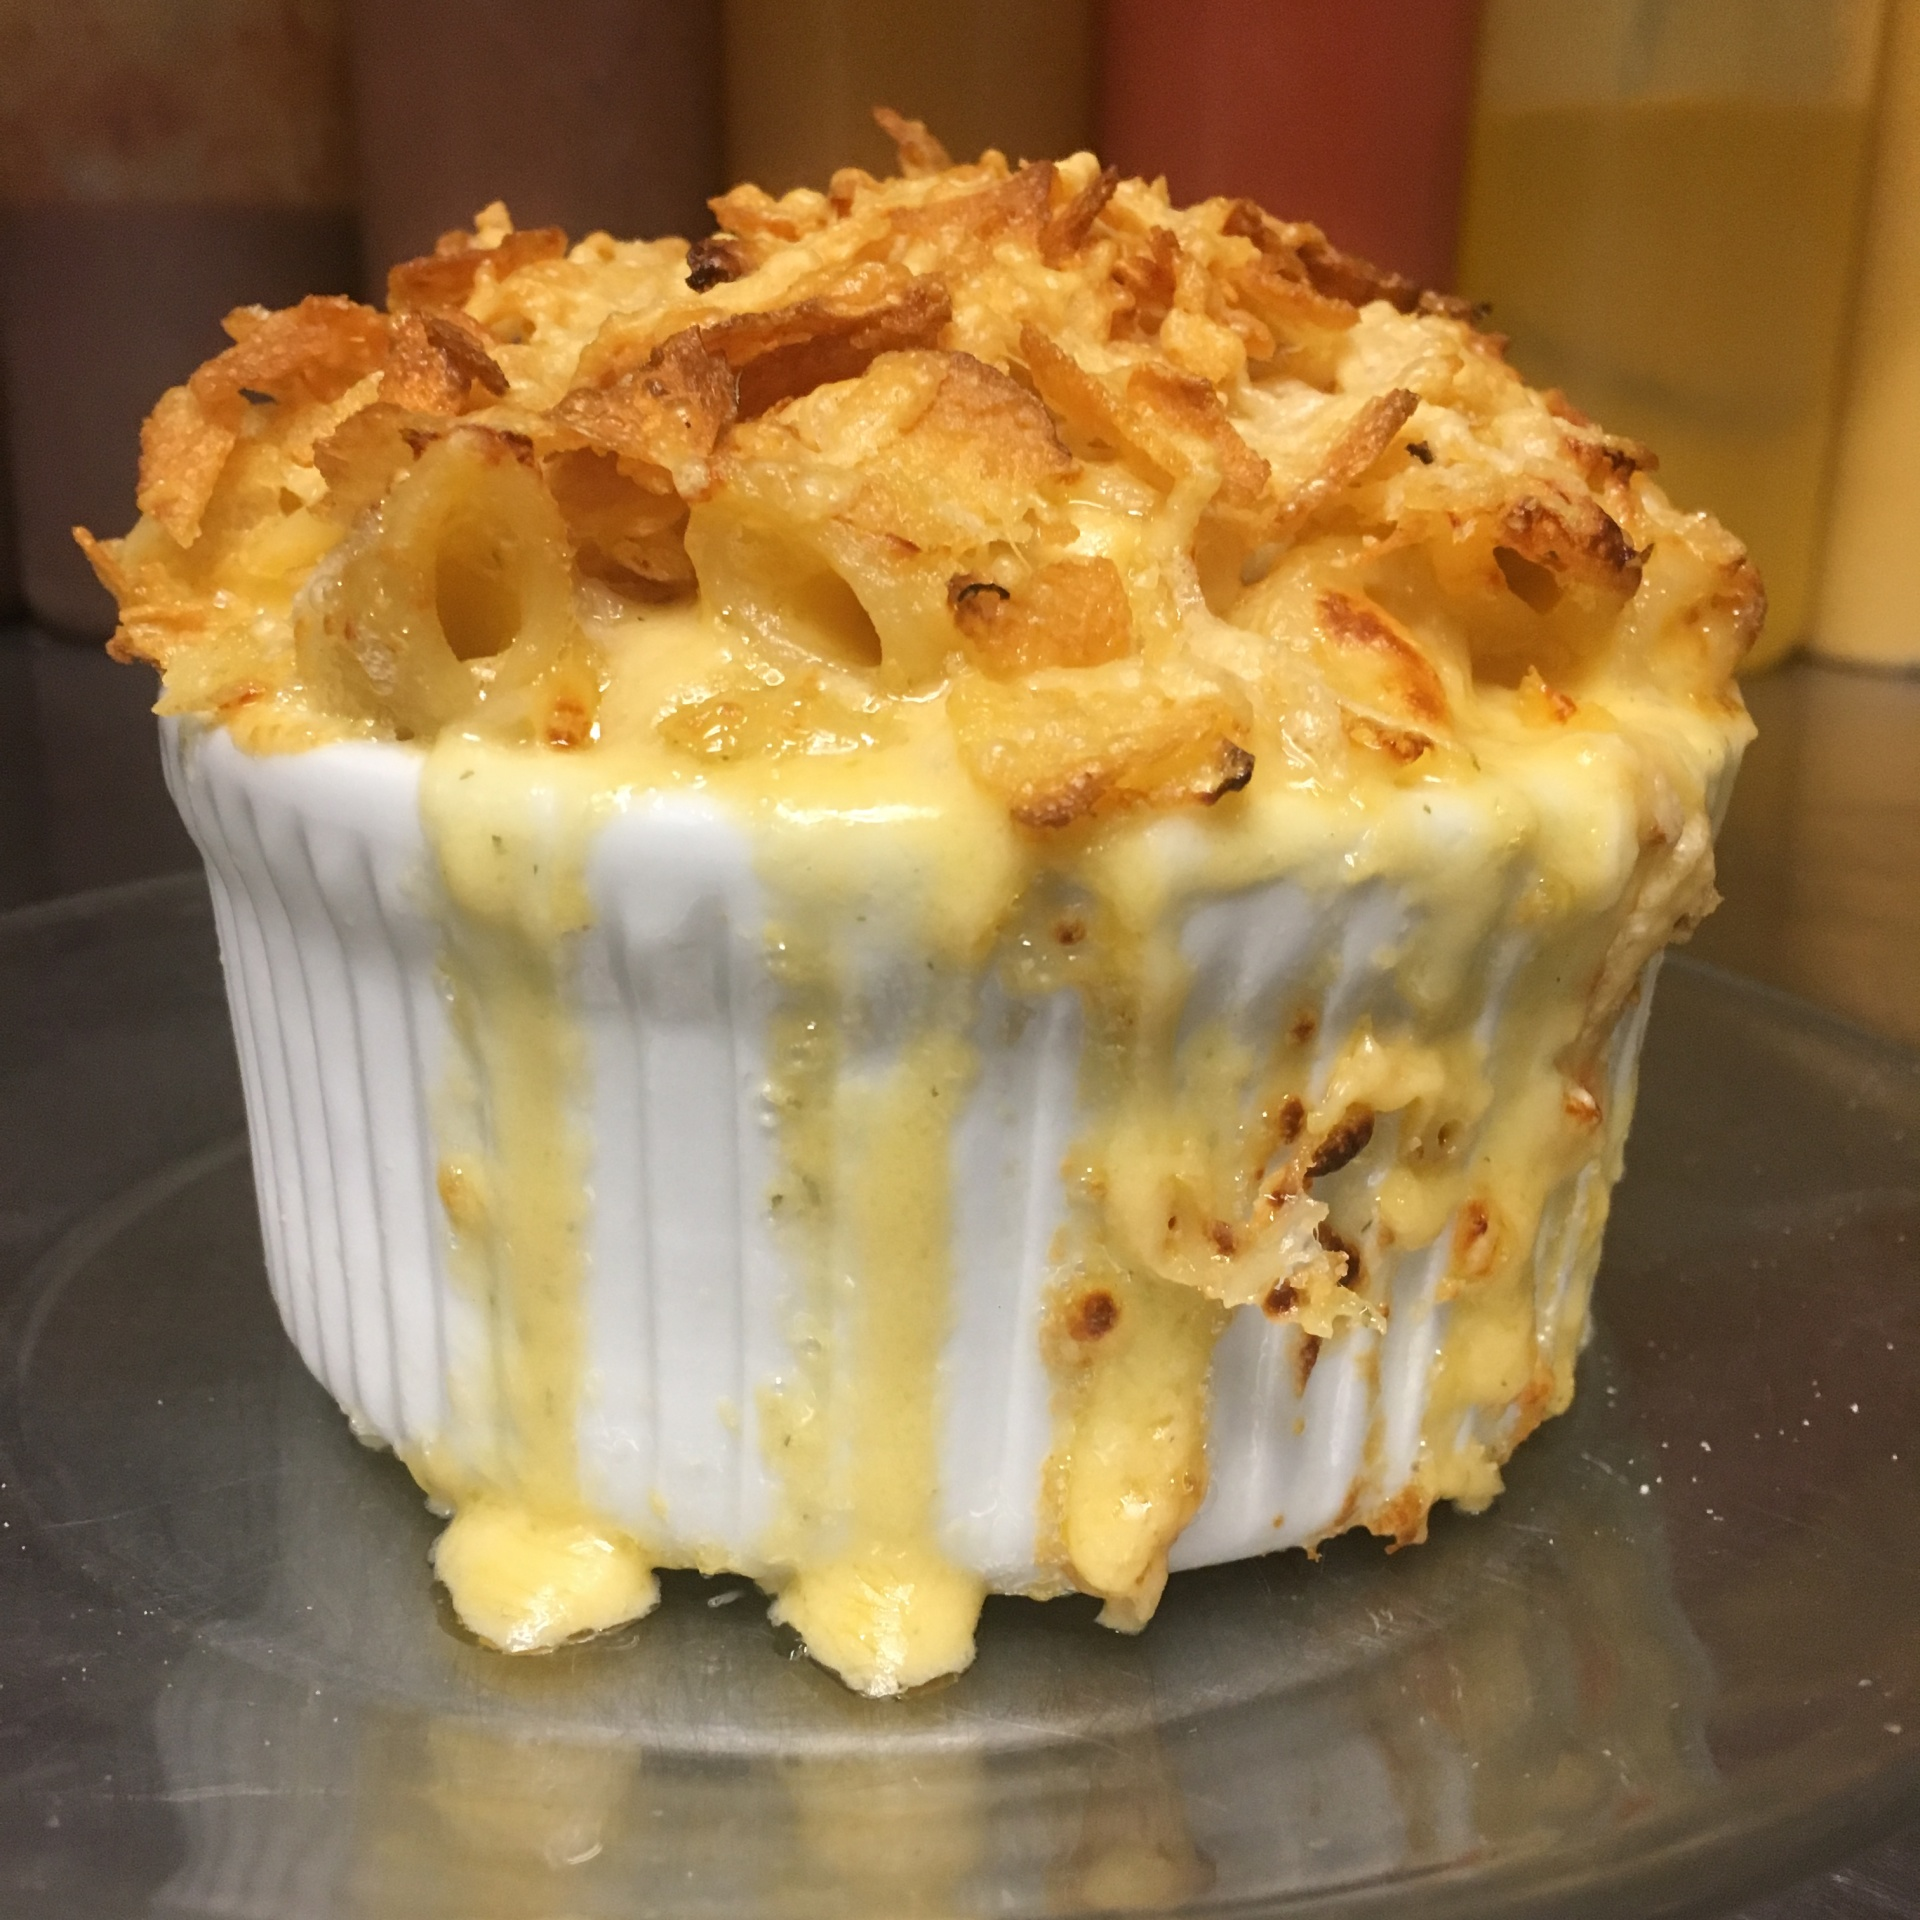 Mac & Cheese!